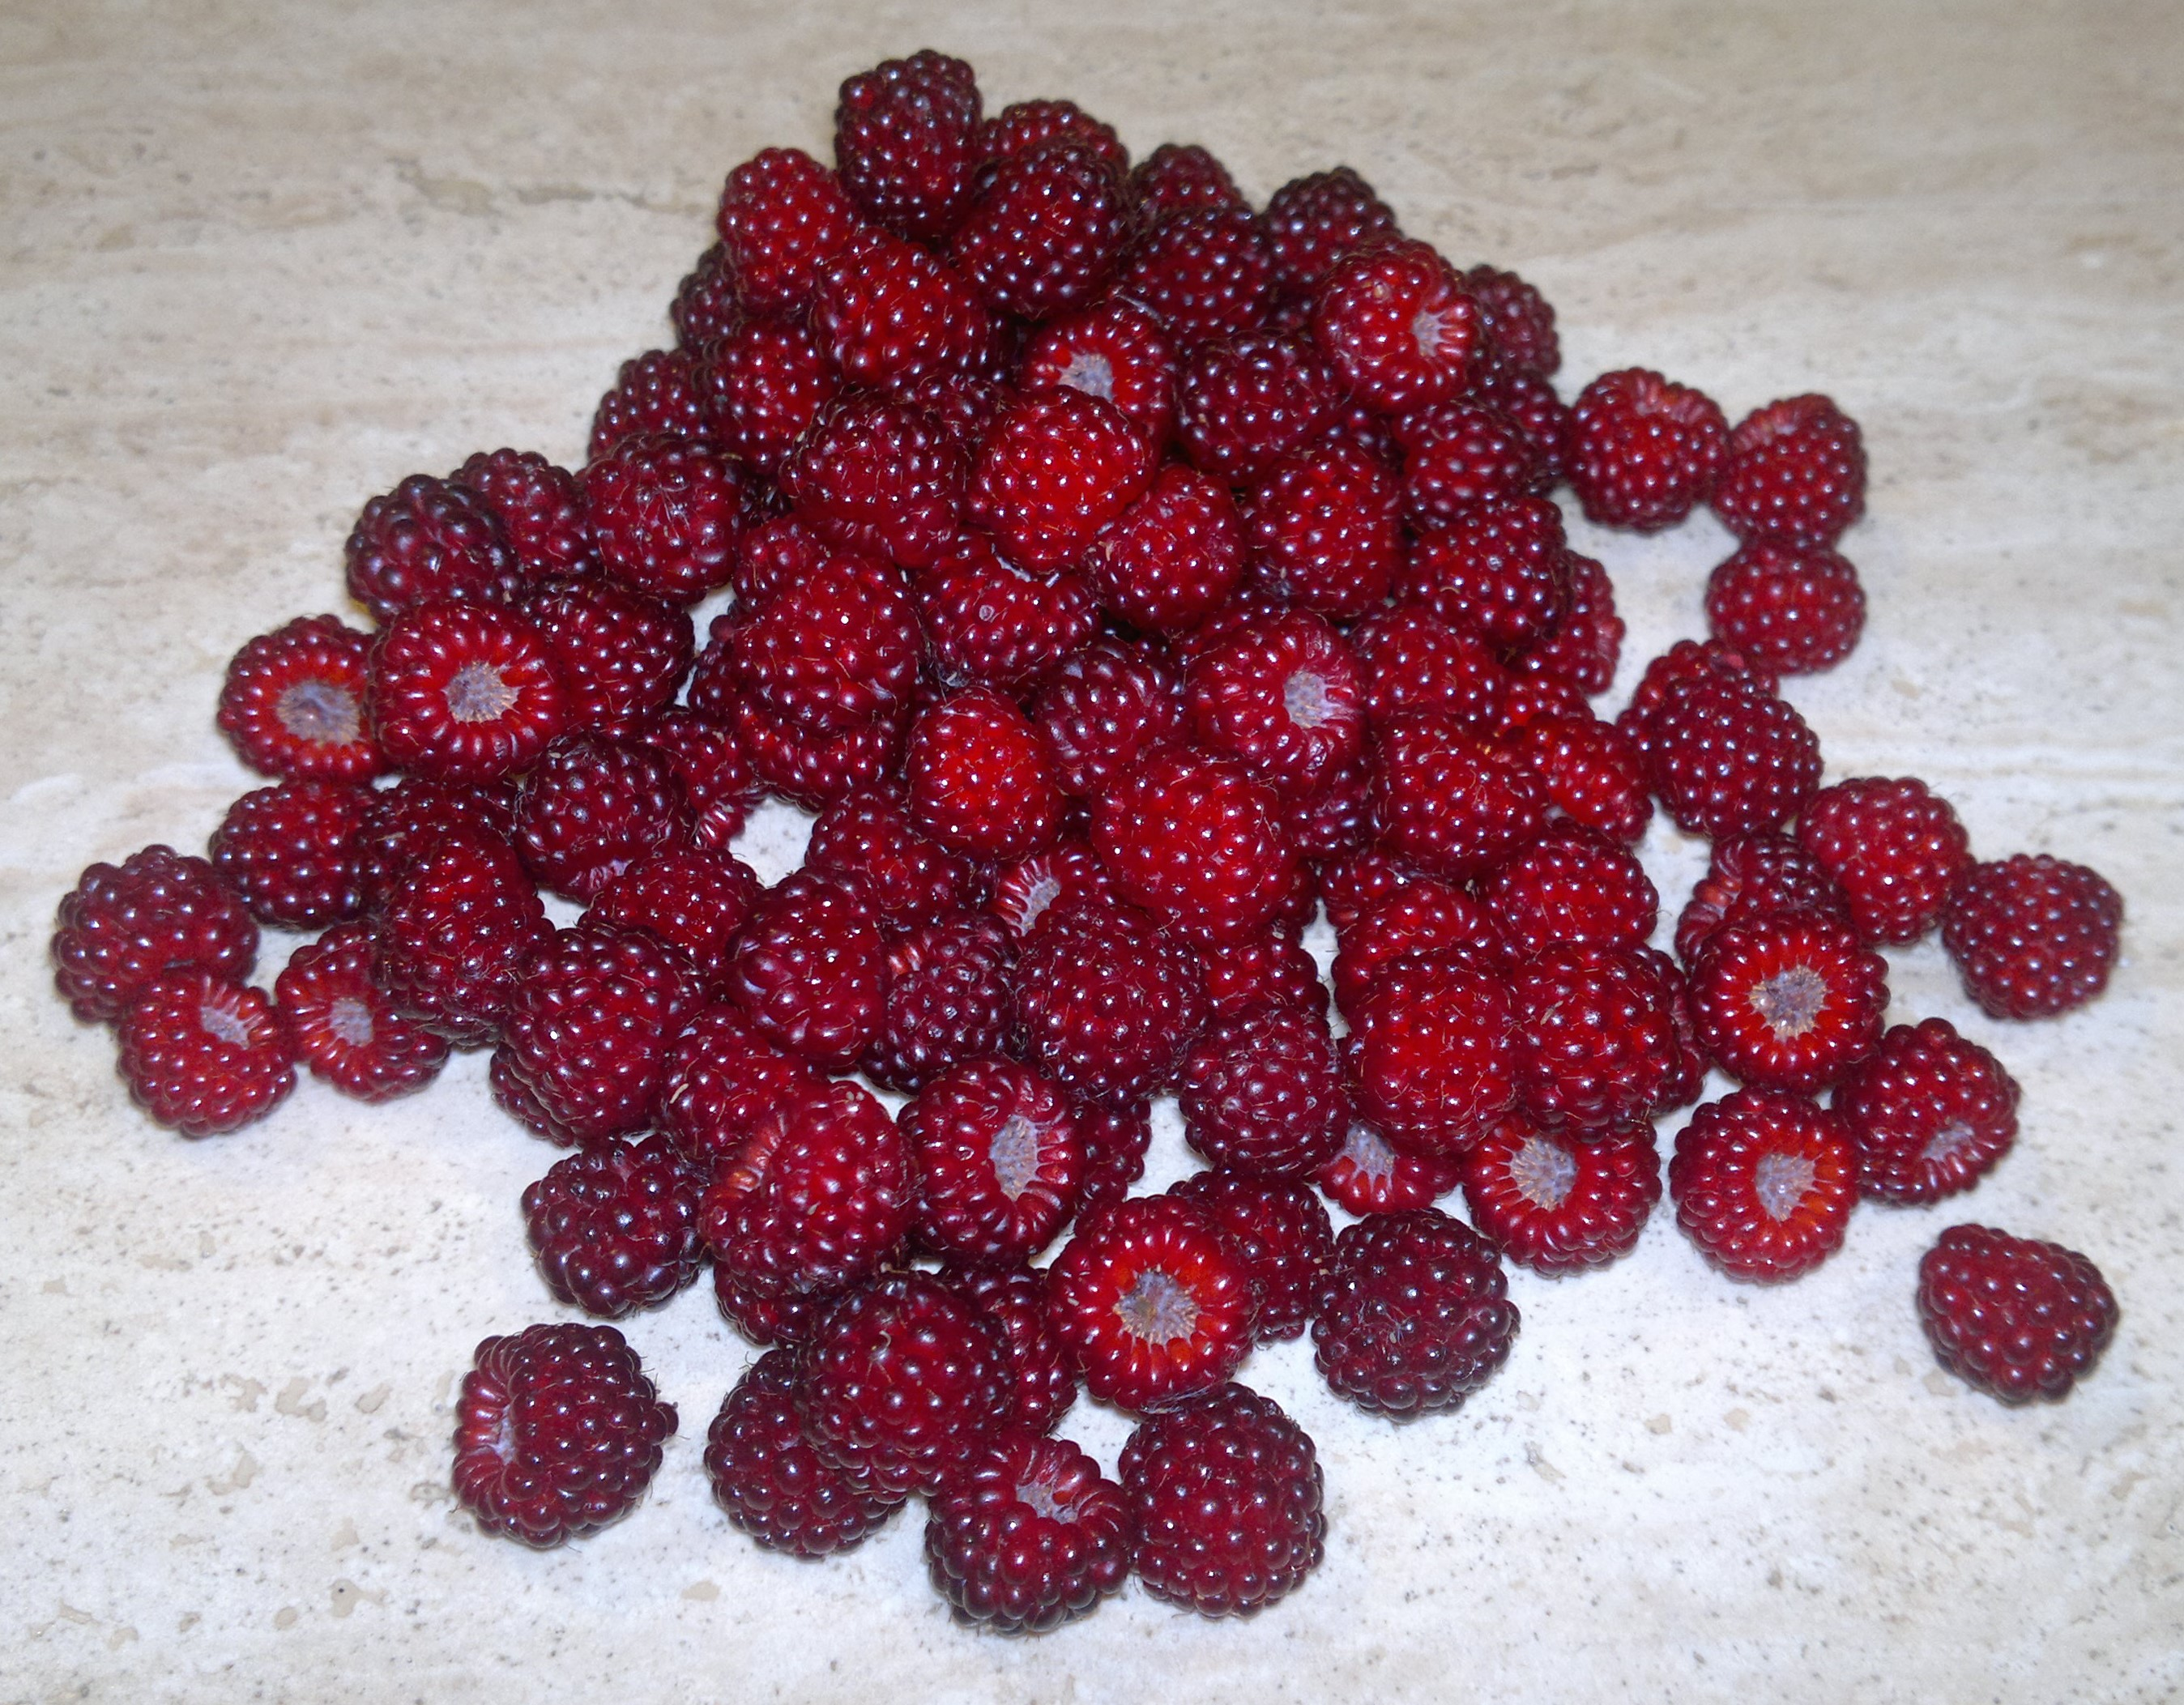 Wineberries - small but beautifully formed